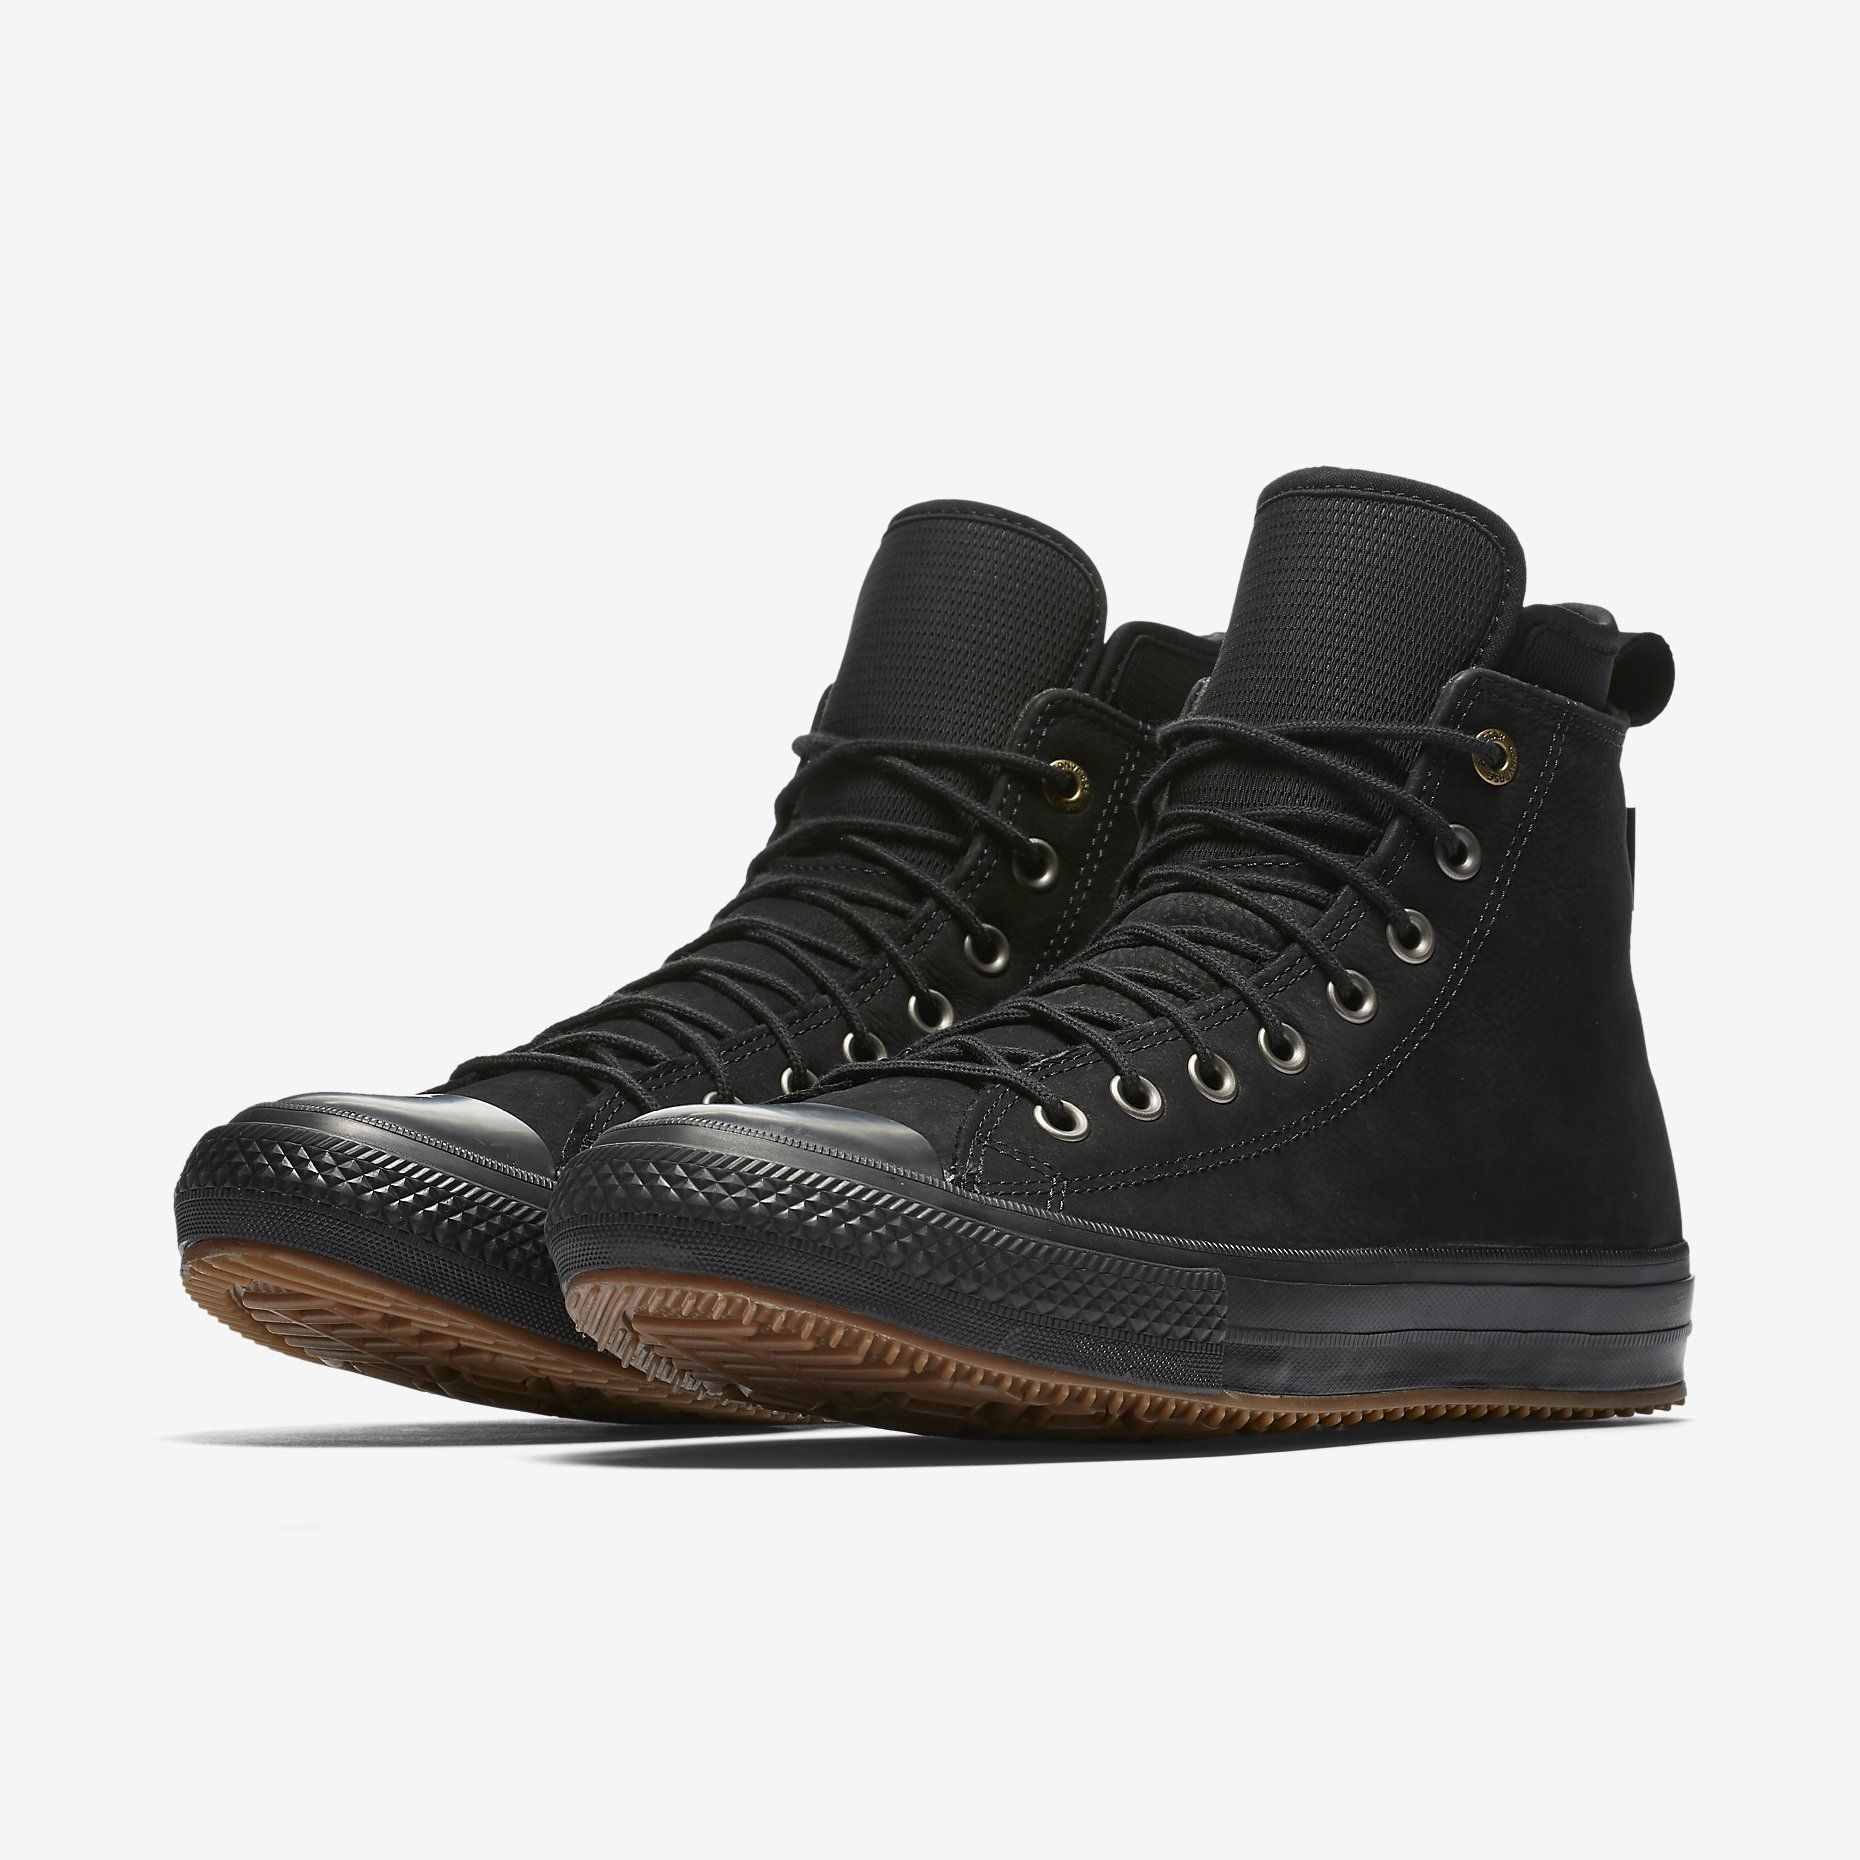 8c296d13a10c55 CONVERSE CHUCK TAYLOR ALL STAR WATERPROOF NUBUCK UNISEX BOOT X 120  47.97